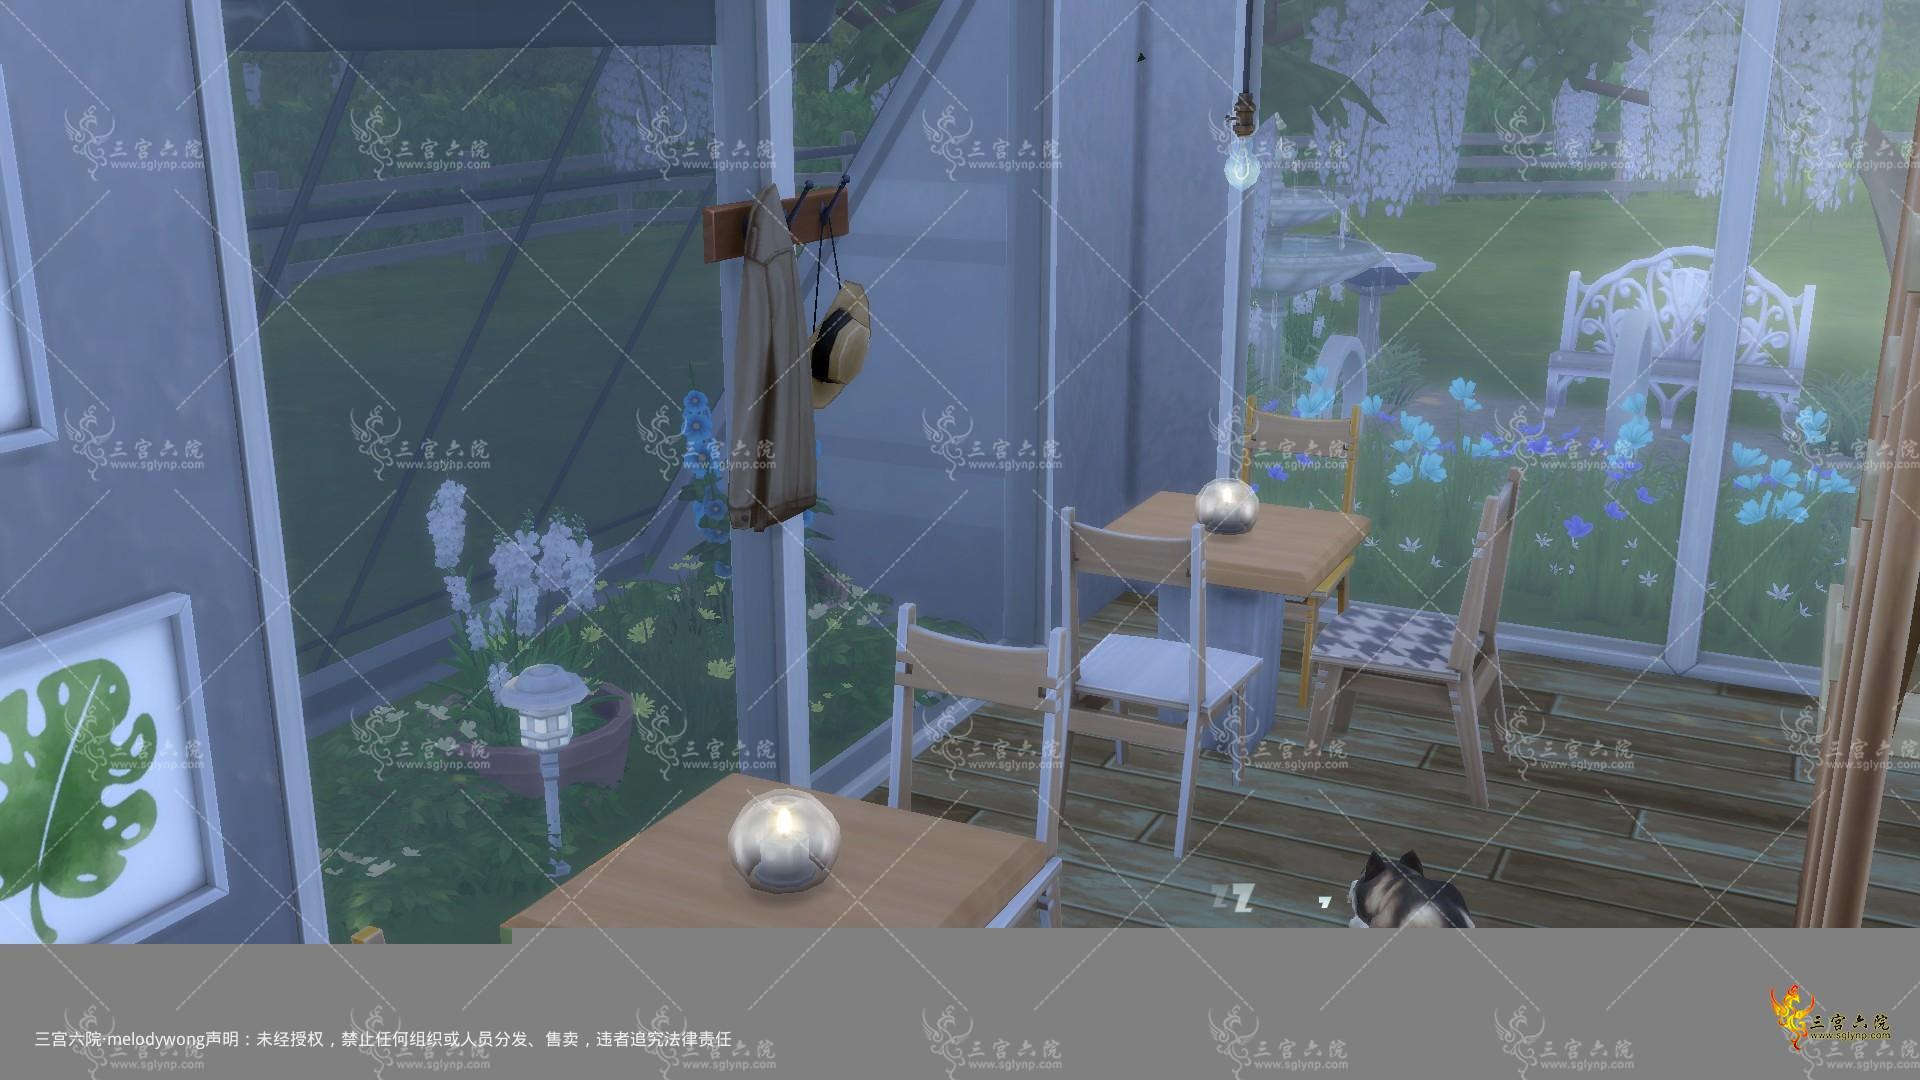 The Sims 4 2021_8_26 下午 09_58_43.png